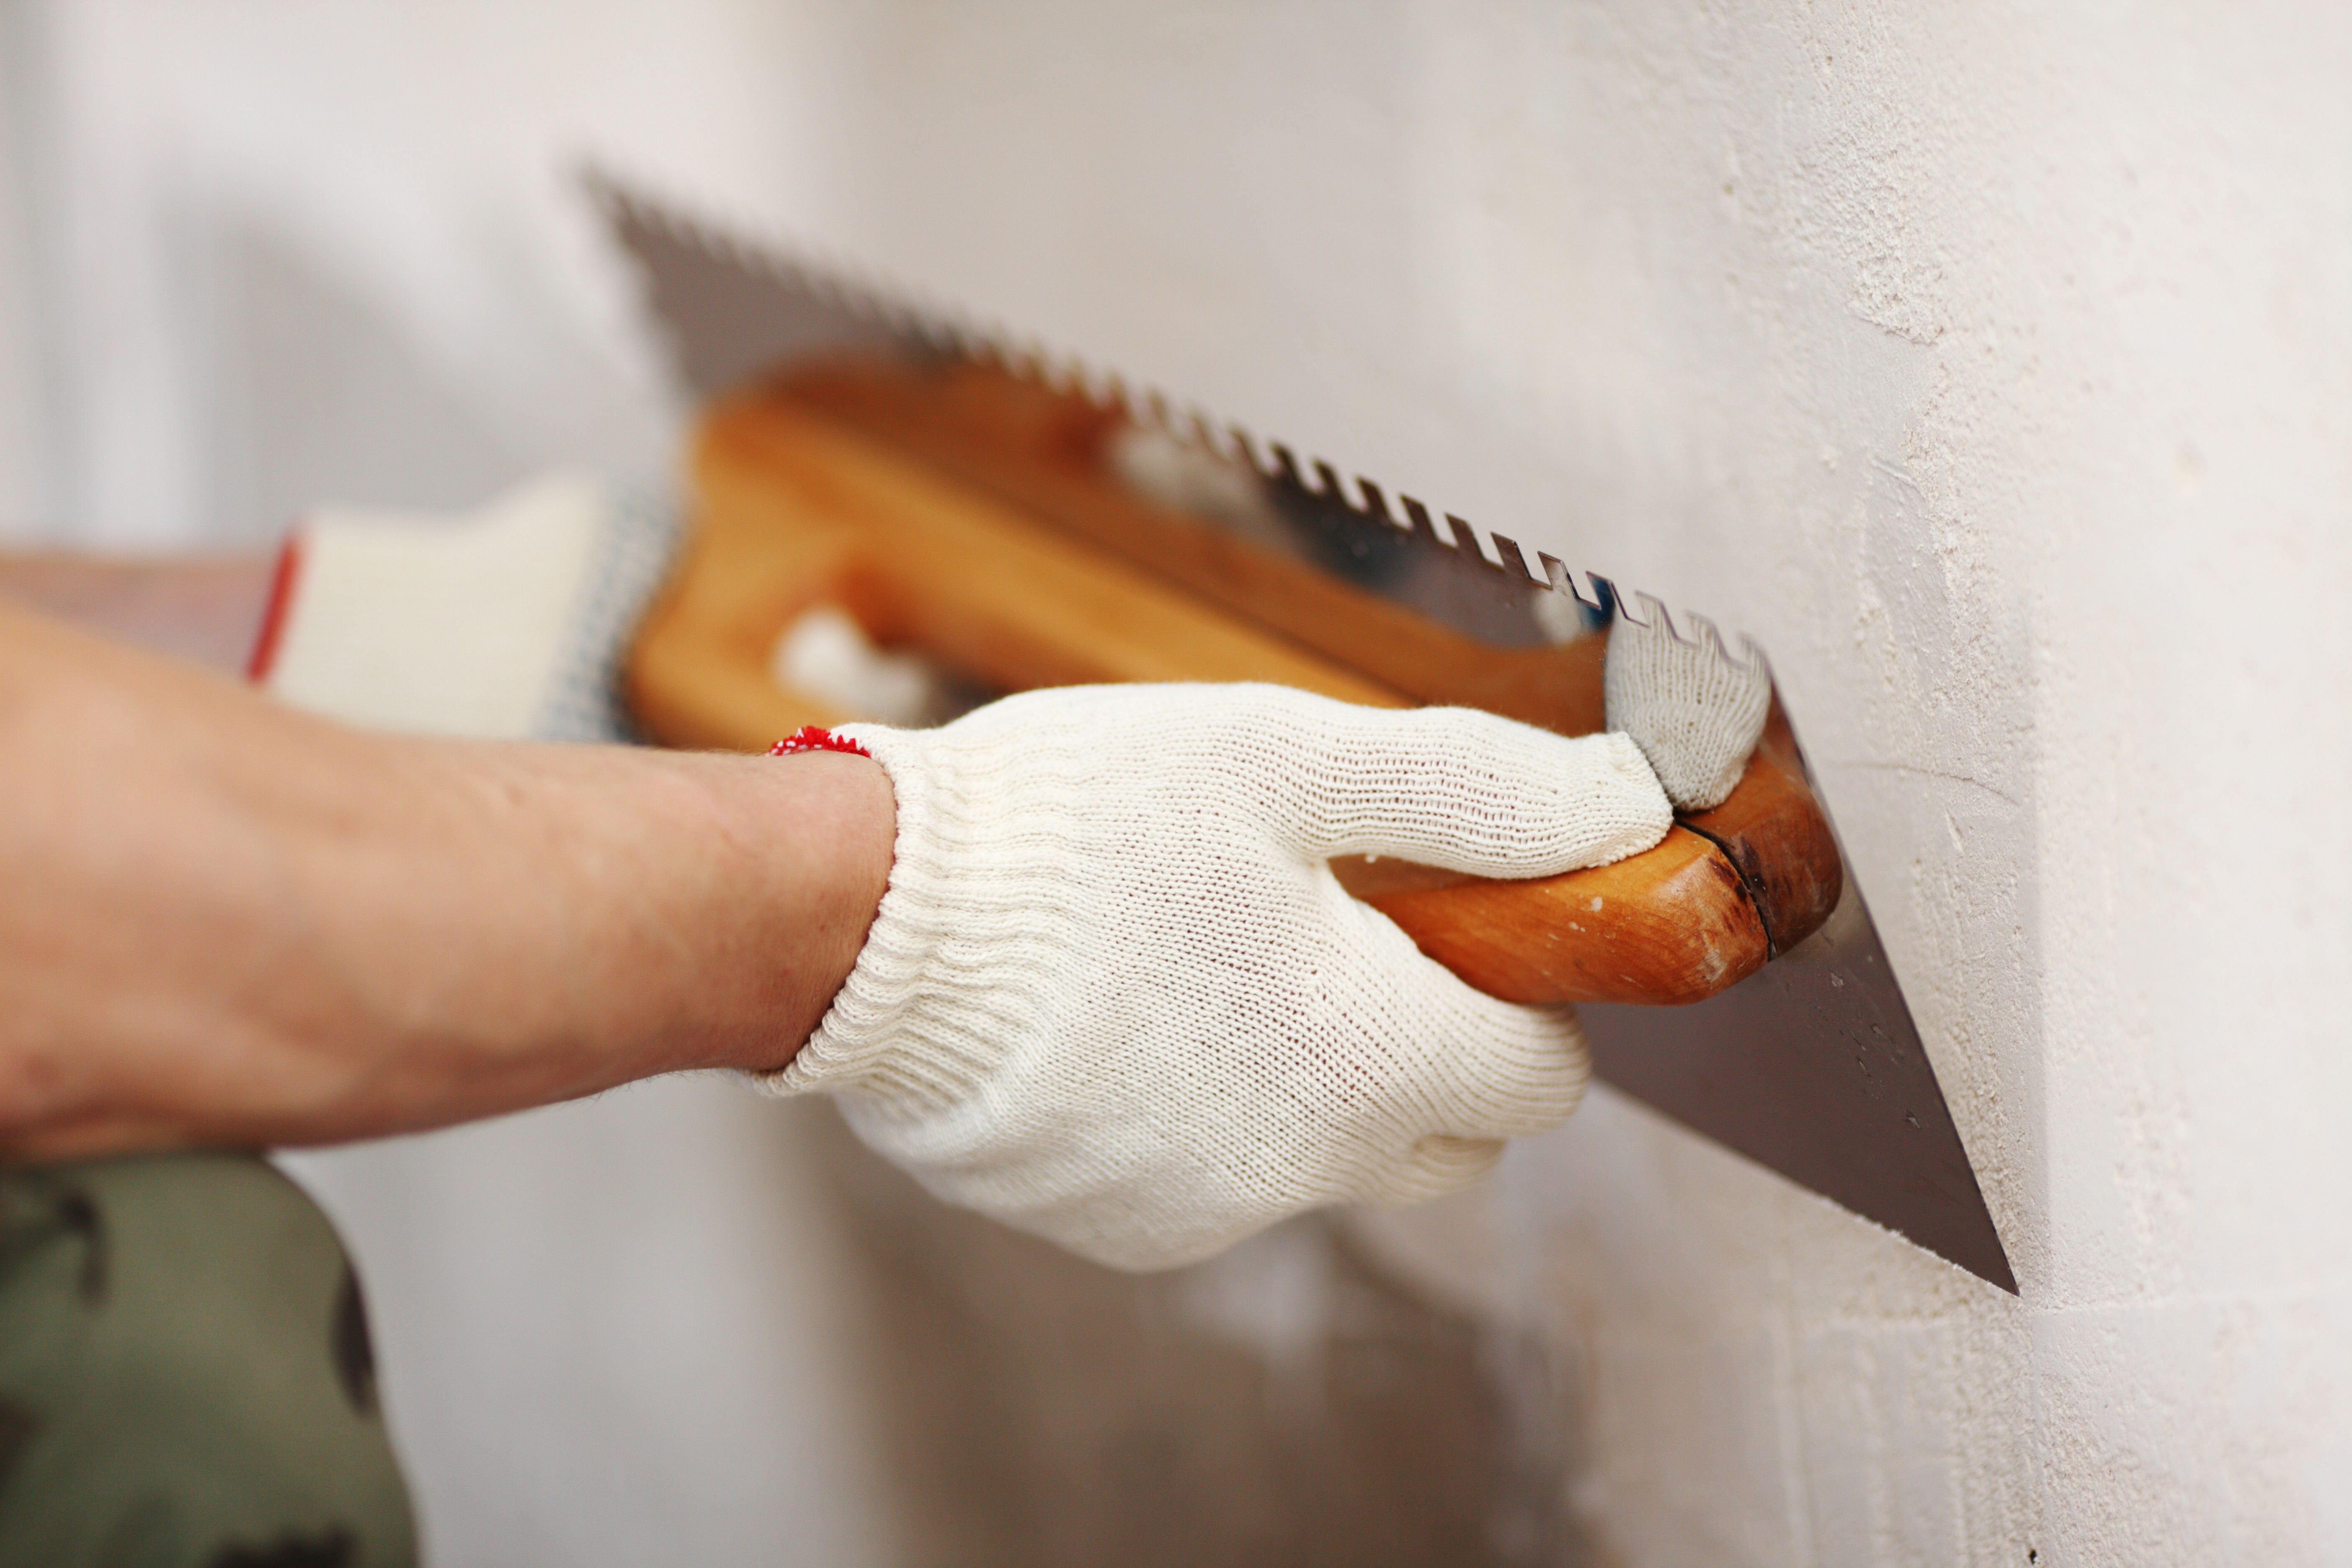 TRIAL PLASTERER REPLACEMENT FOR SERIVCES AND PARRALAX